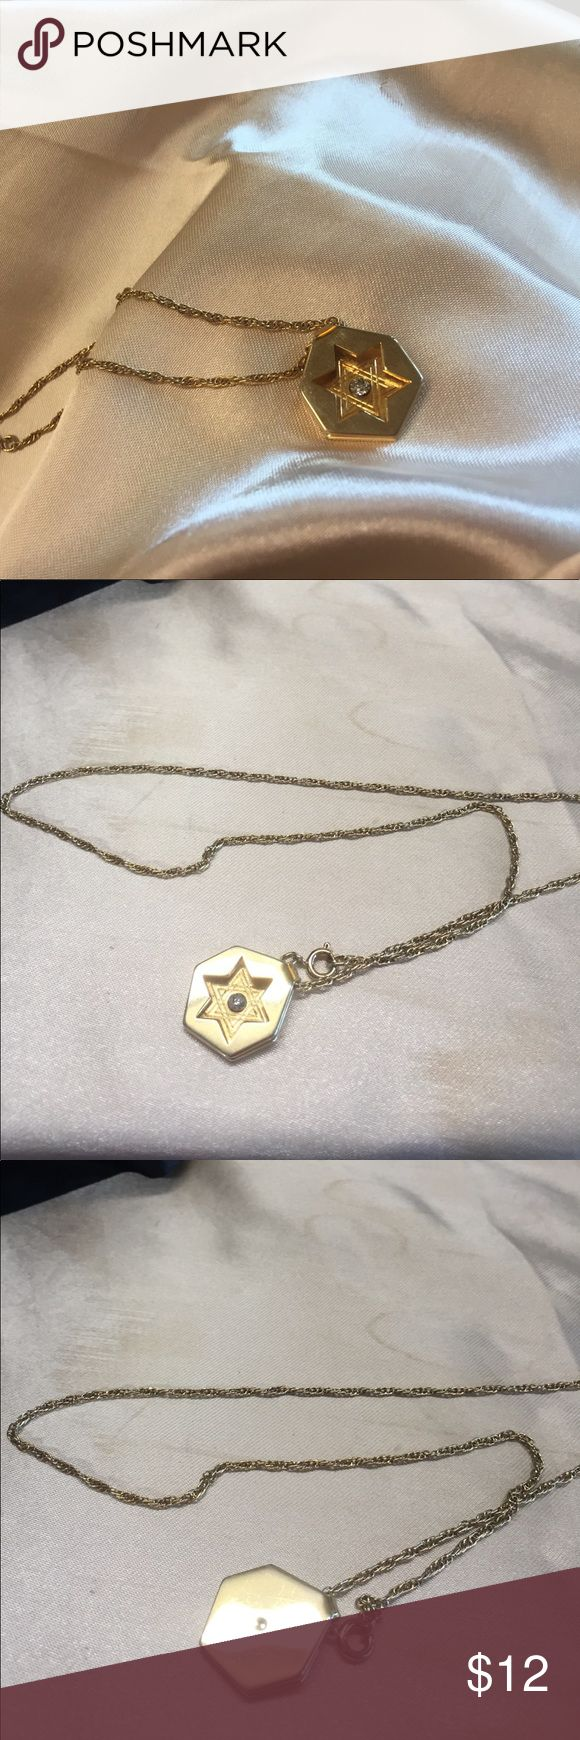 Vintage star pendant Vintage gold tone shadow box star pendant Jewelry Necklaces